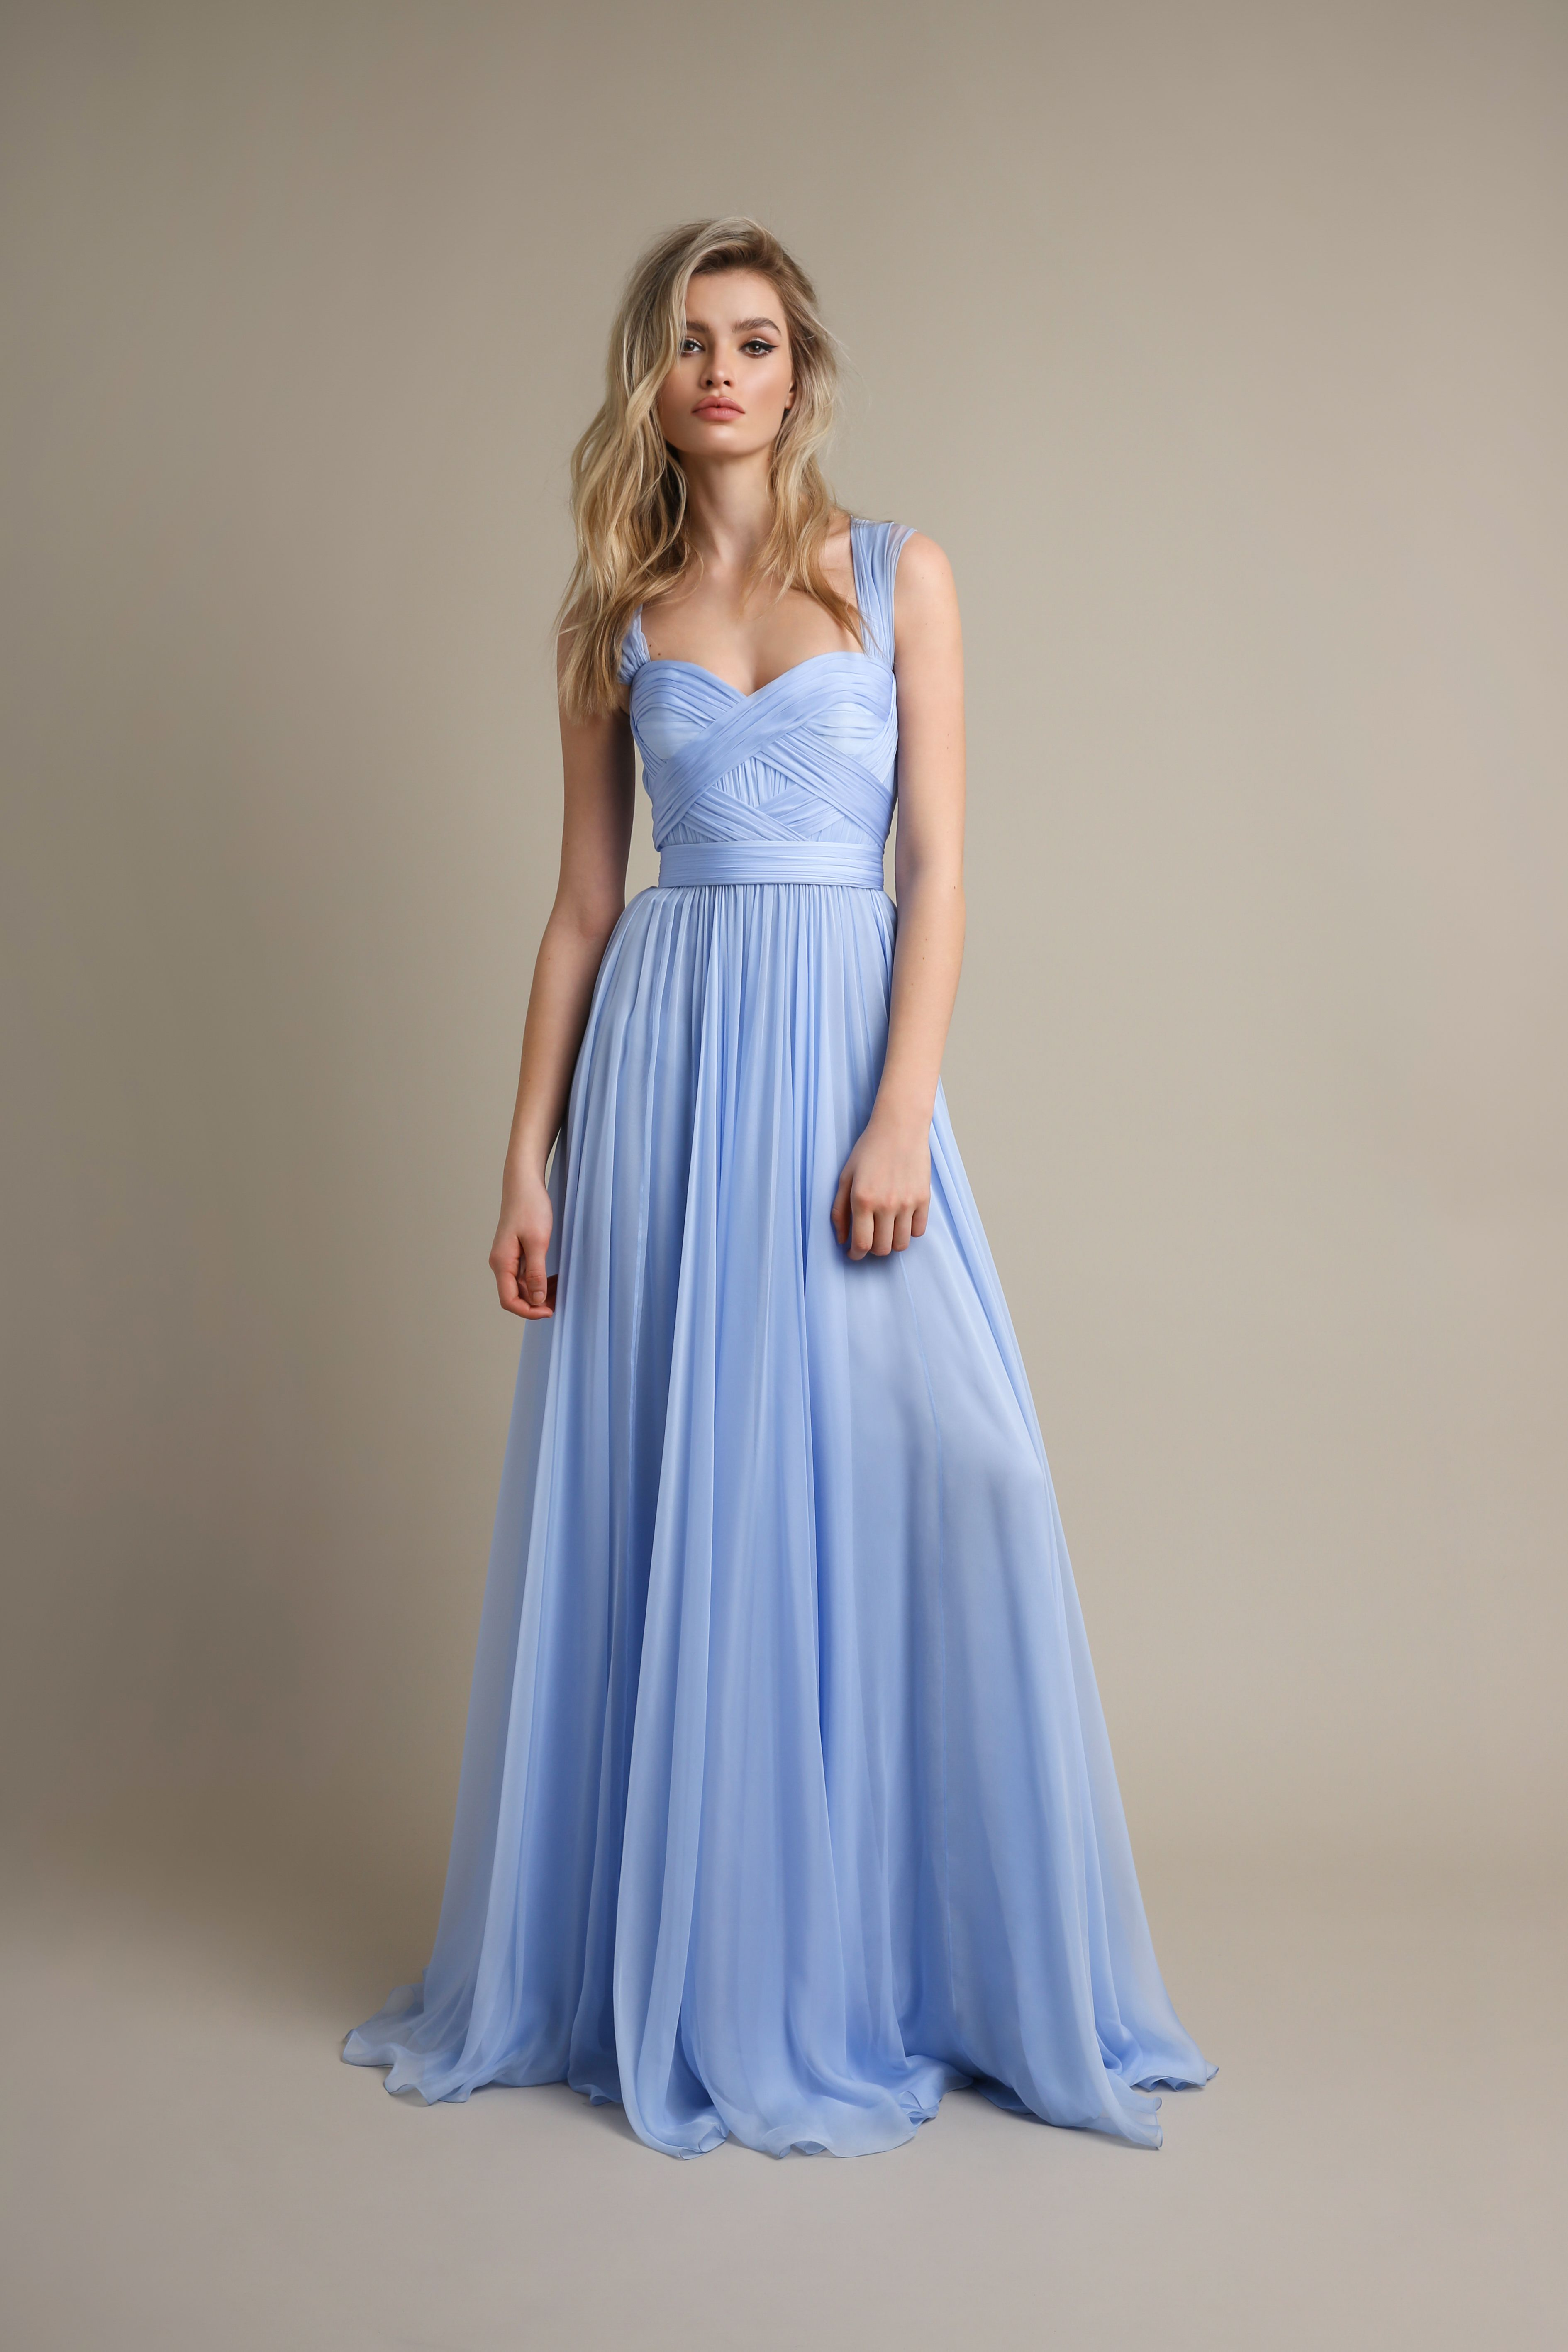 Shop This Aw19 Look On Saks Silk Evening Gown Silk Bridesmaid Dresses Evening Gowns [ 5668 x 3779 Pixel ]